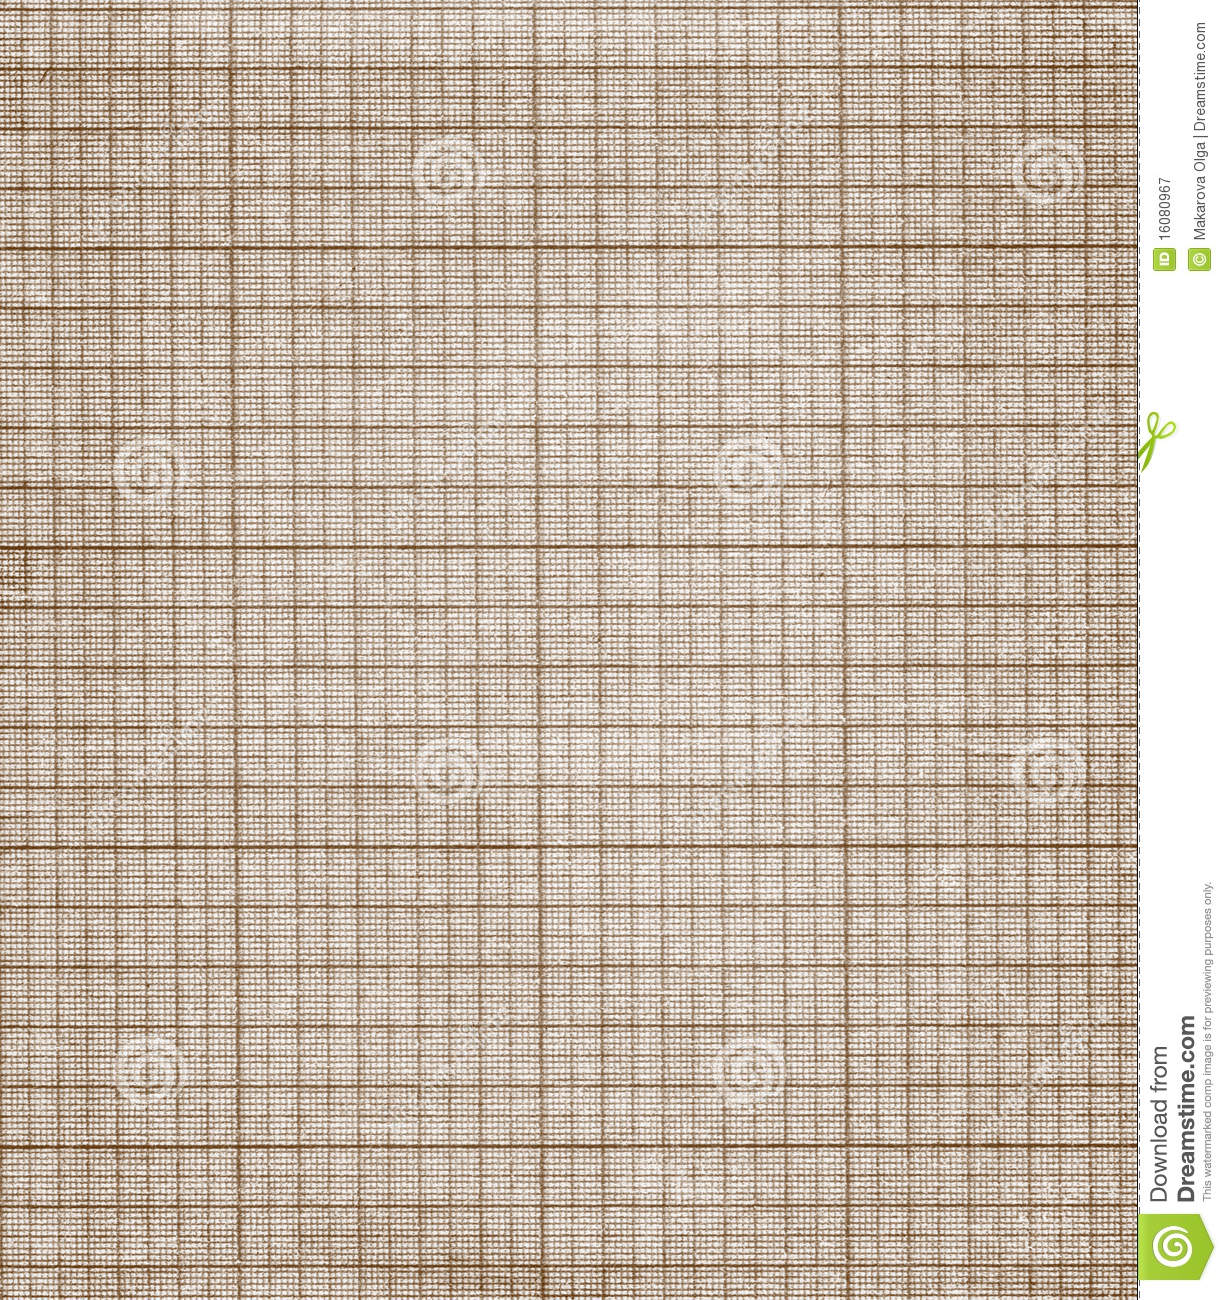 old graph paper texture royalty free stock photography